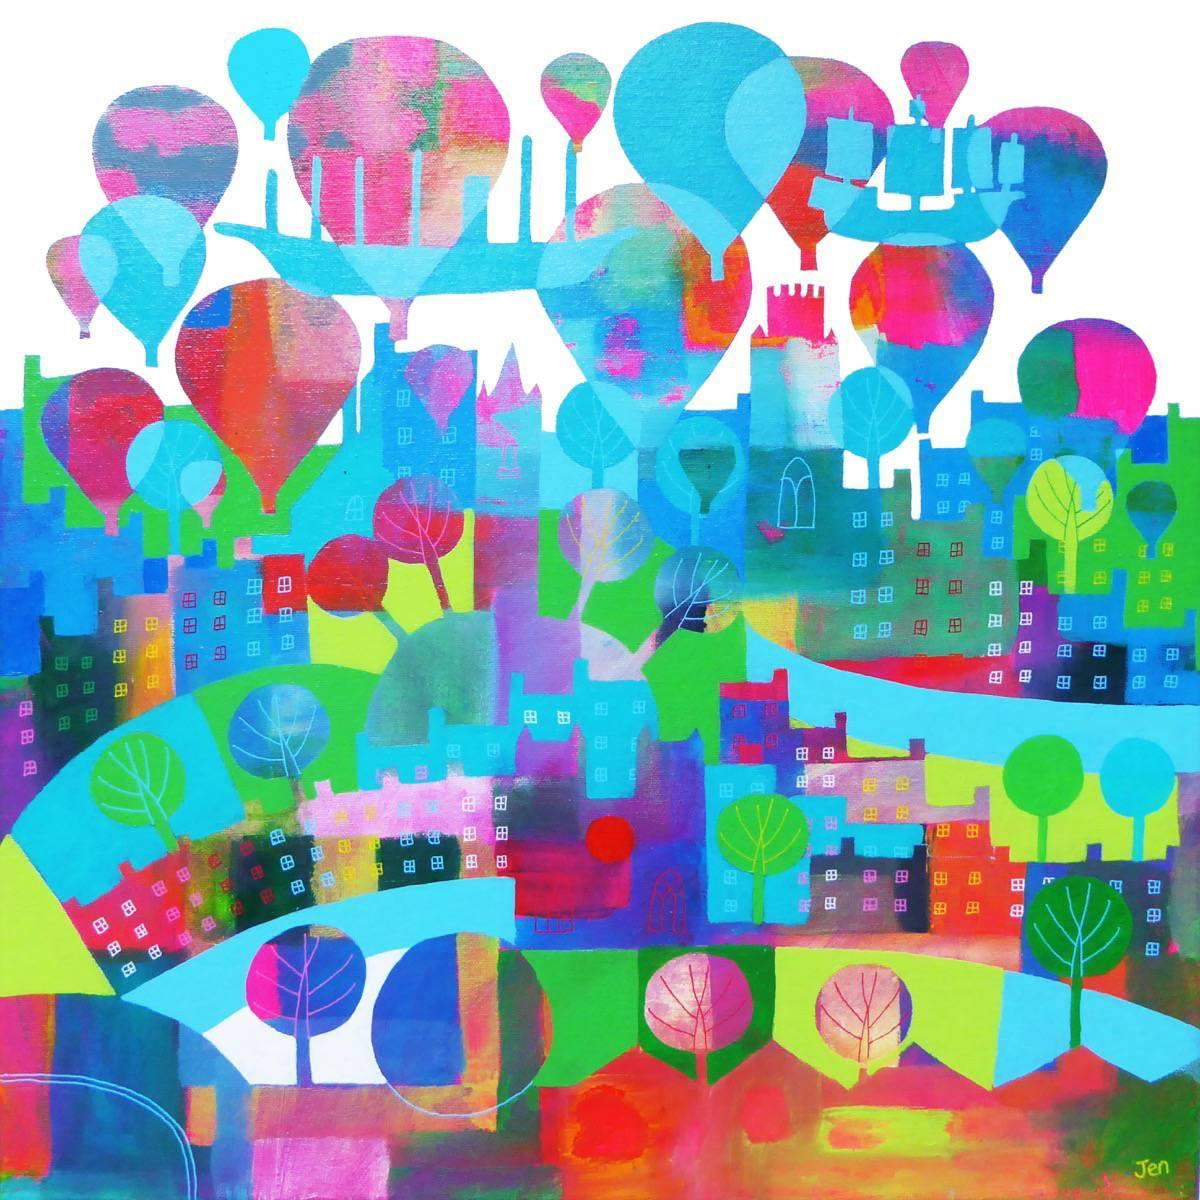 Floats The Boats - Giclée Print by Jenny Urquhart at The Shop